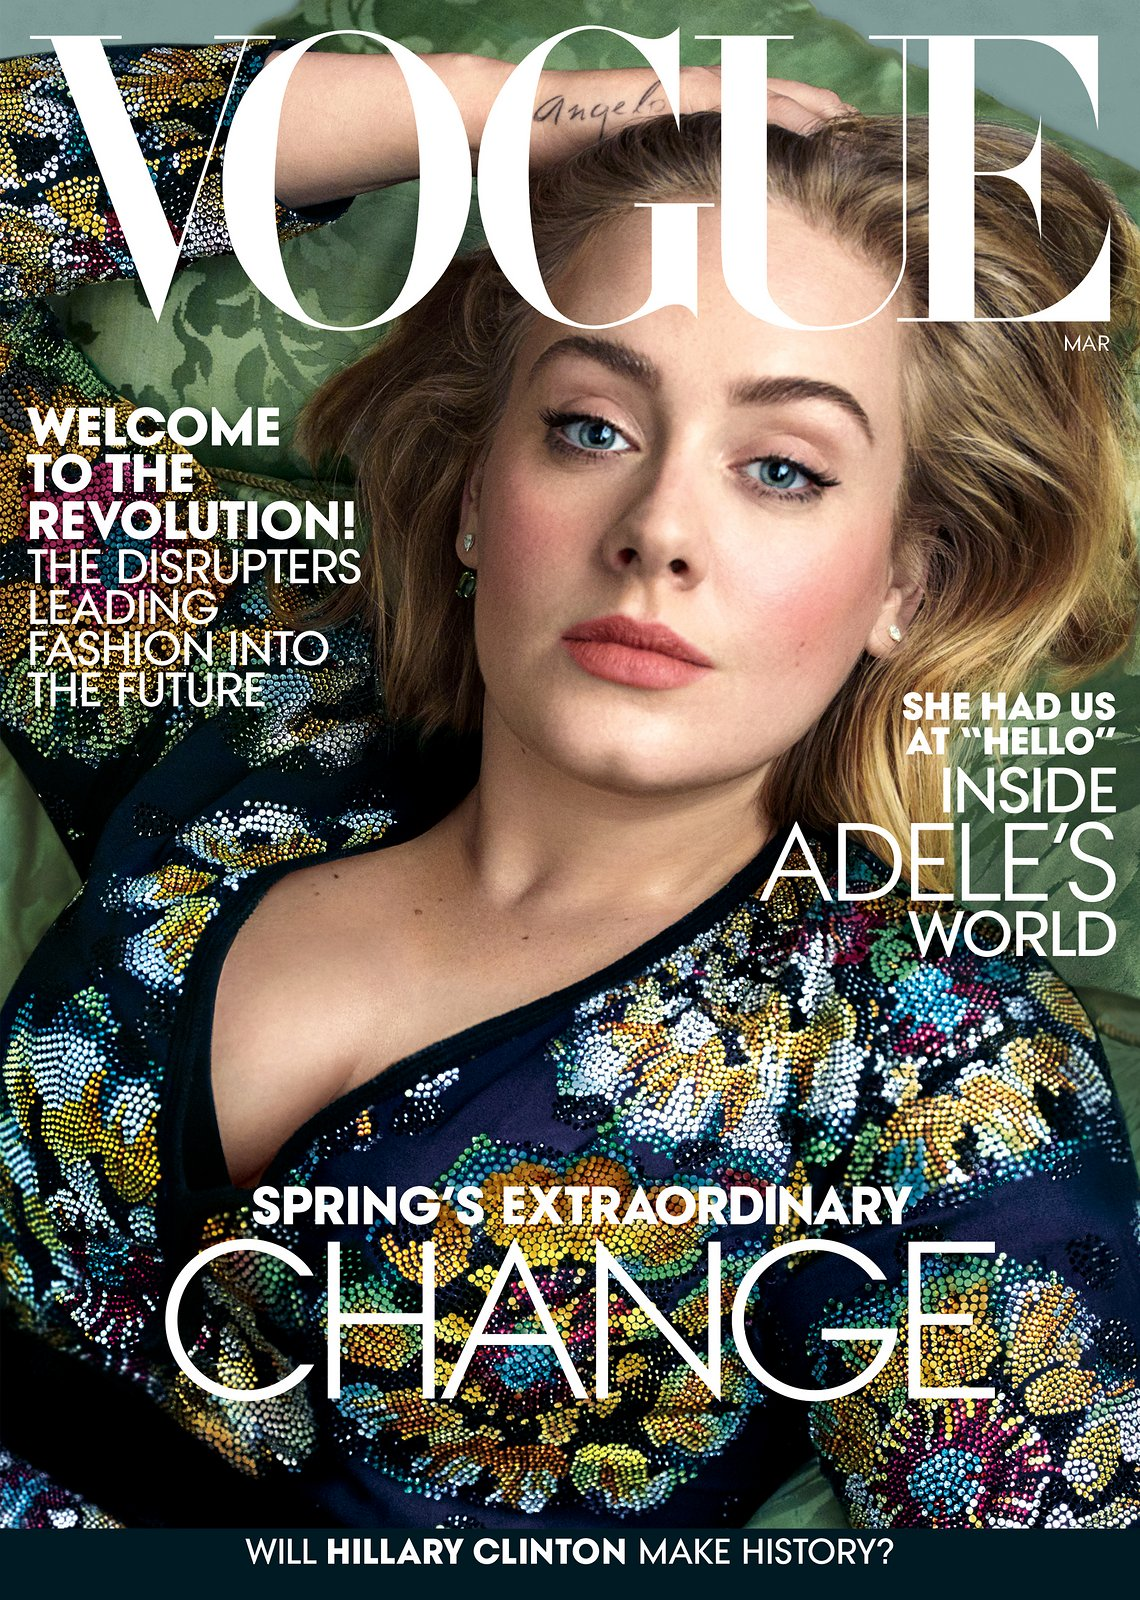 Adele covers Vogue